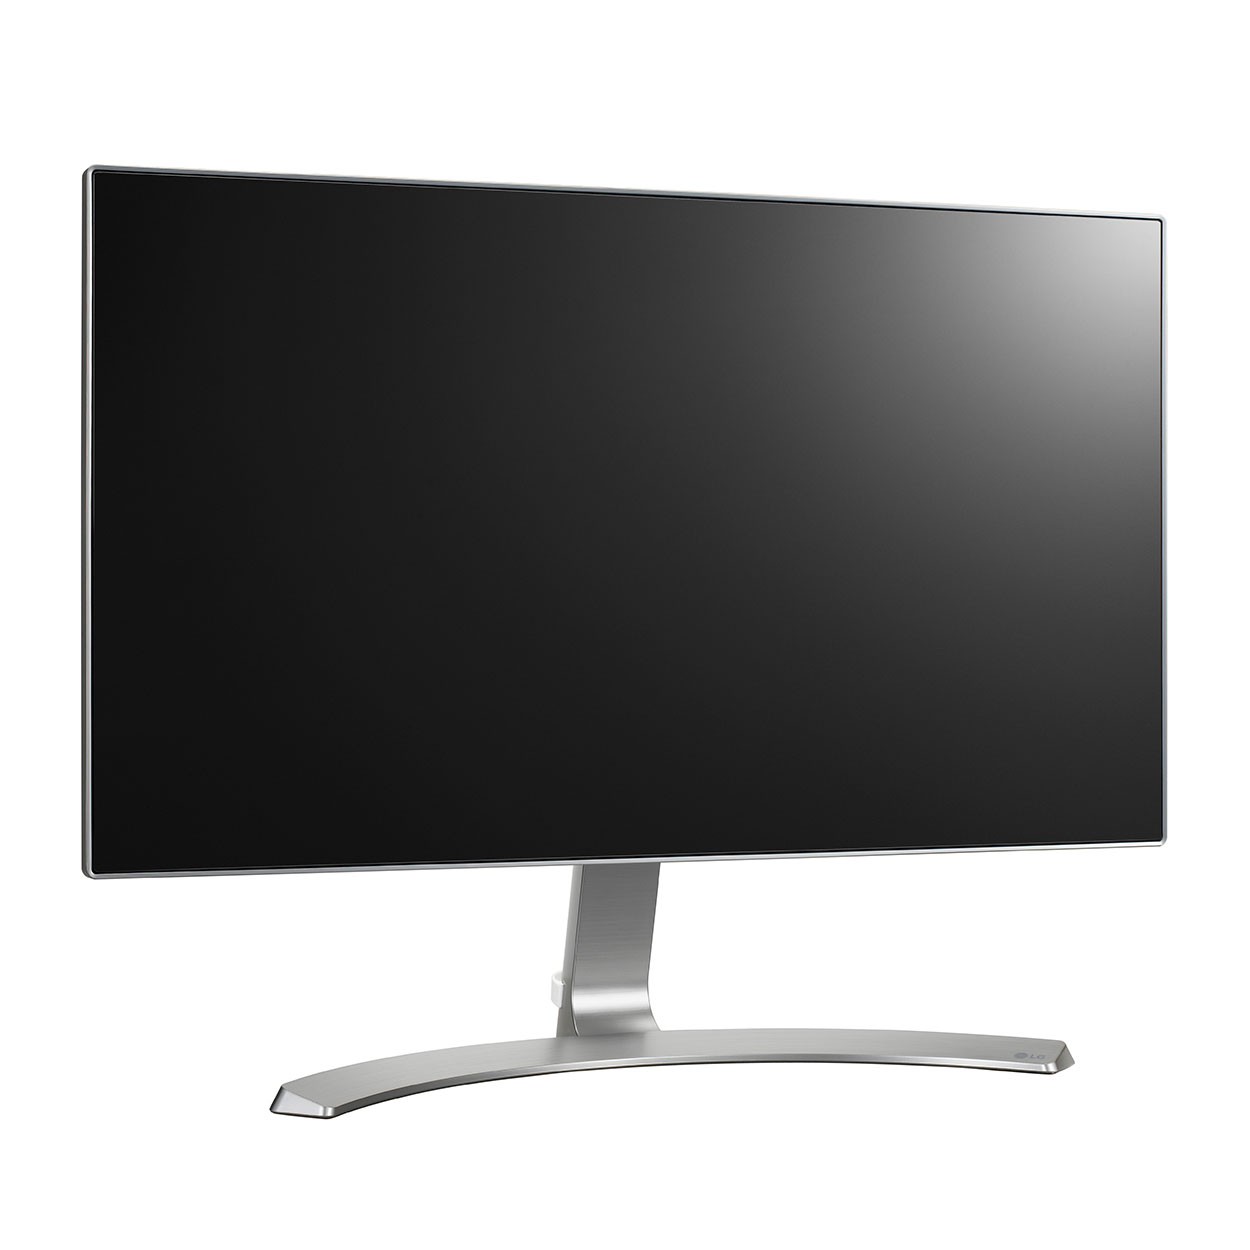 Lg 24 led 24mp88hv s ecran pc lg sur for Photo ecran pc